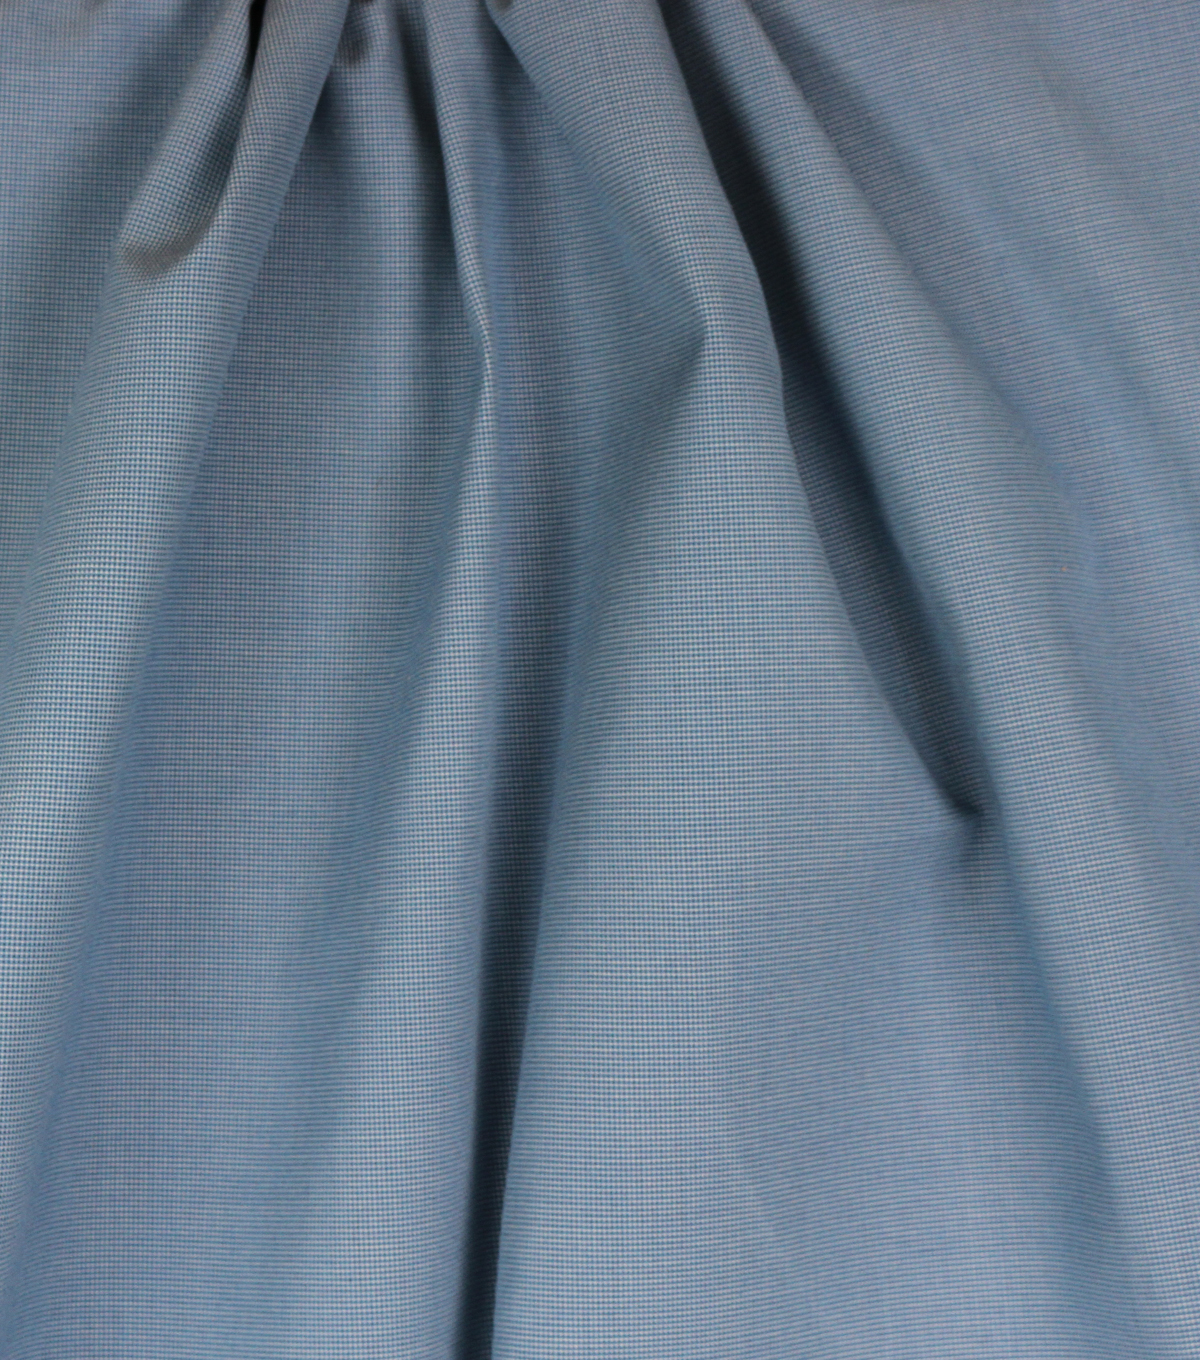 Optimum Performance Multi-Purpose Decor Fabric 54\u0027\u0027-Ocean